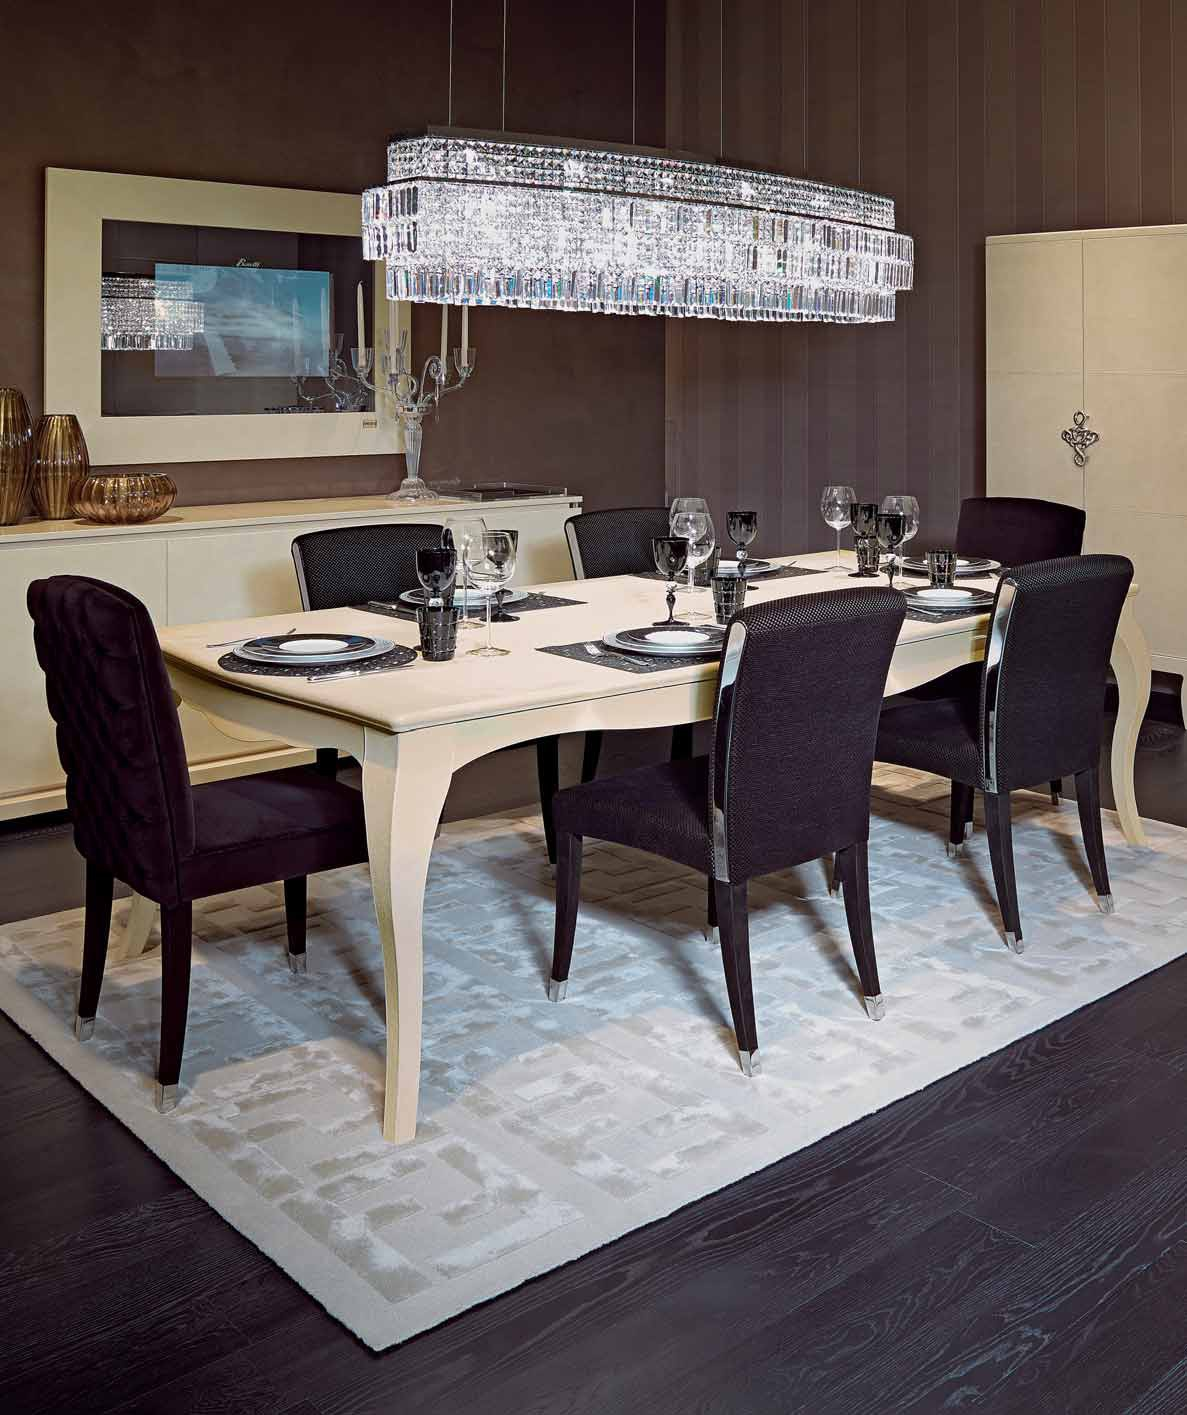 Dining Room Supervisor Job Description: Canova Dining Table In Leather With A Frame Made Of